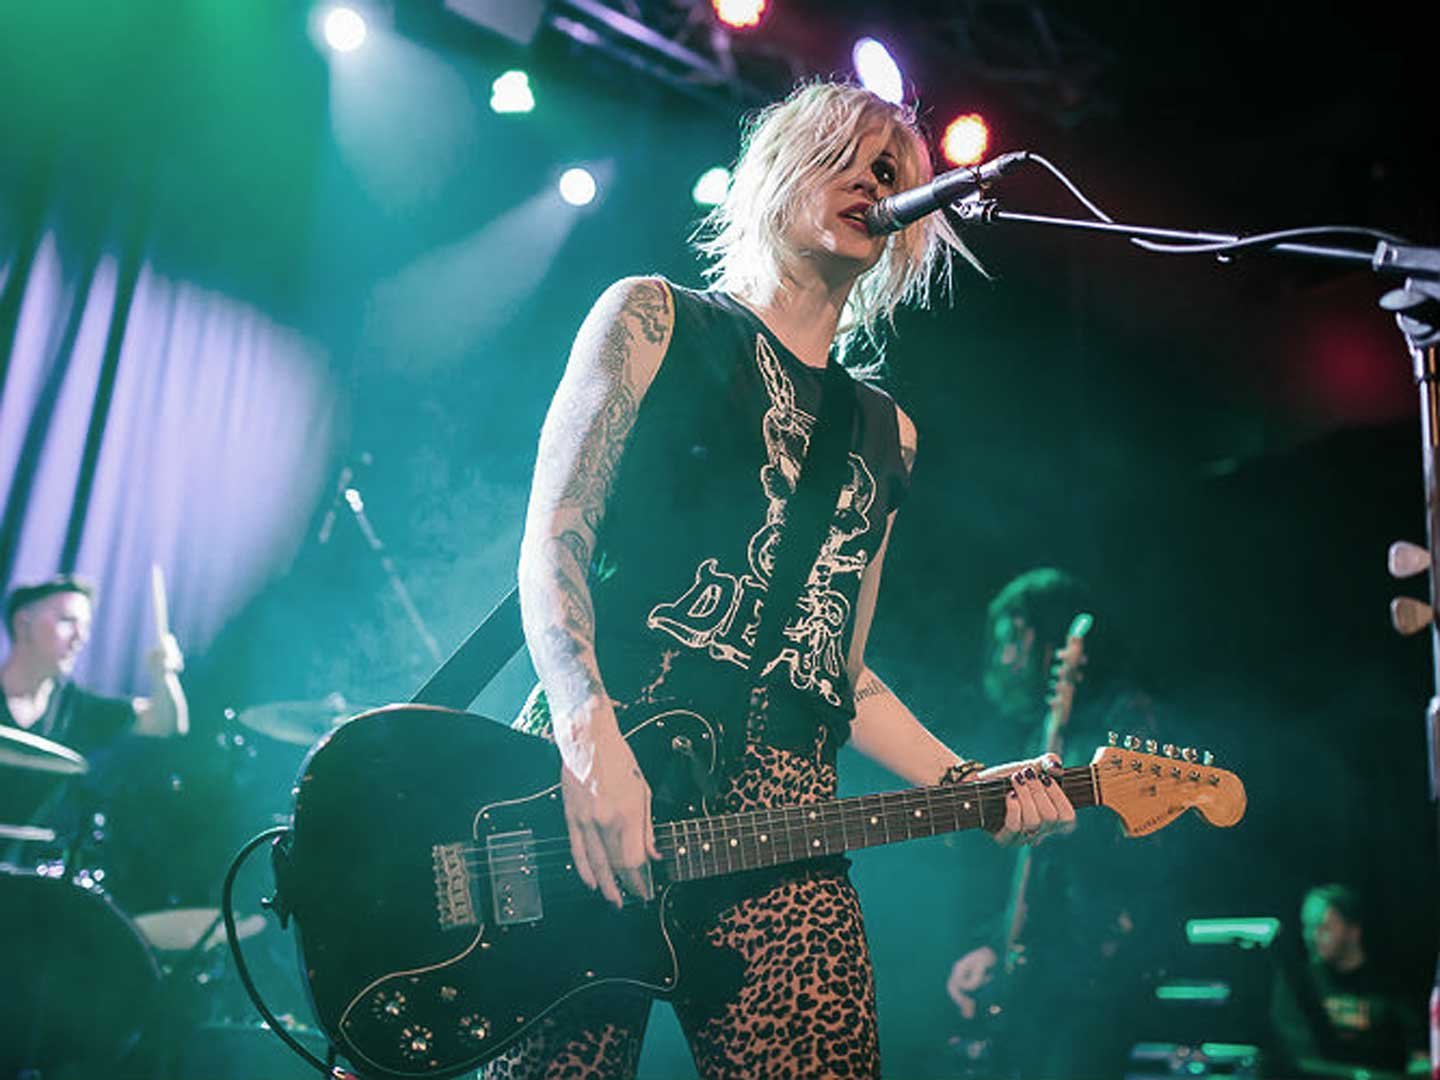 Brody Dalle performing live